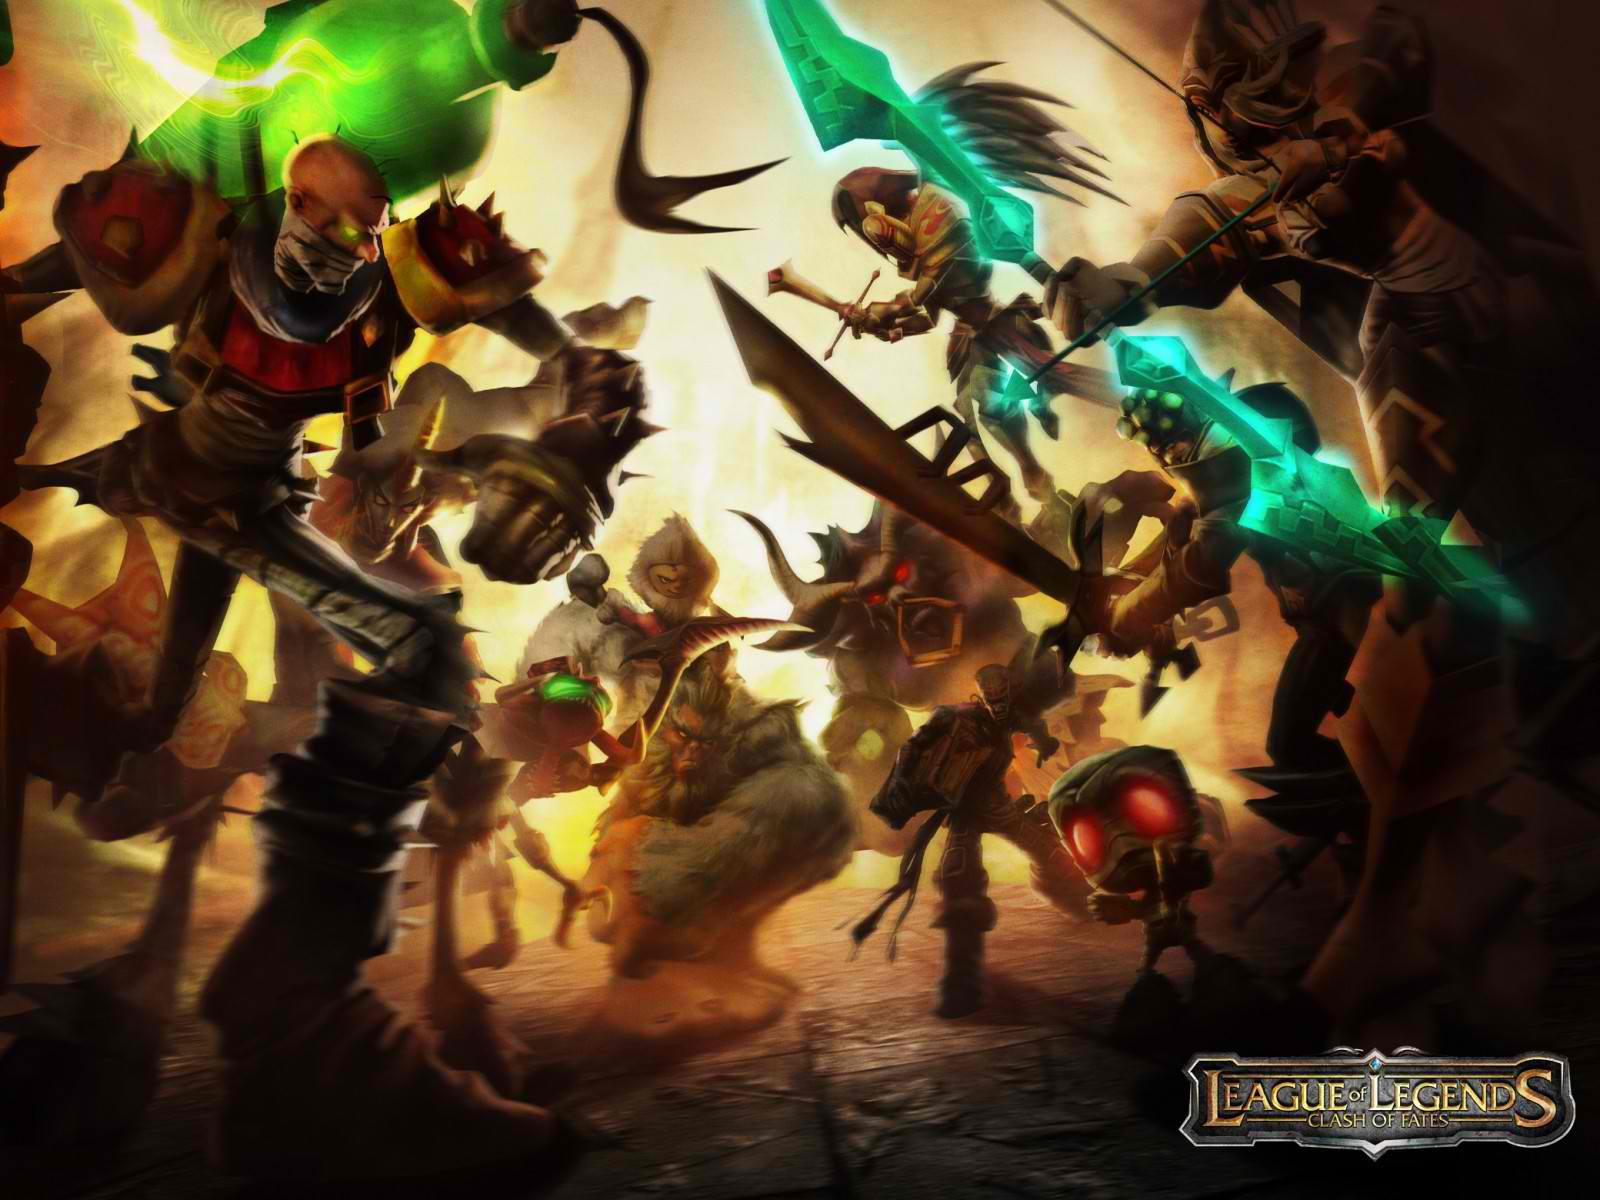 More League of Legends wallpapers can be downloaded here: